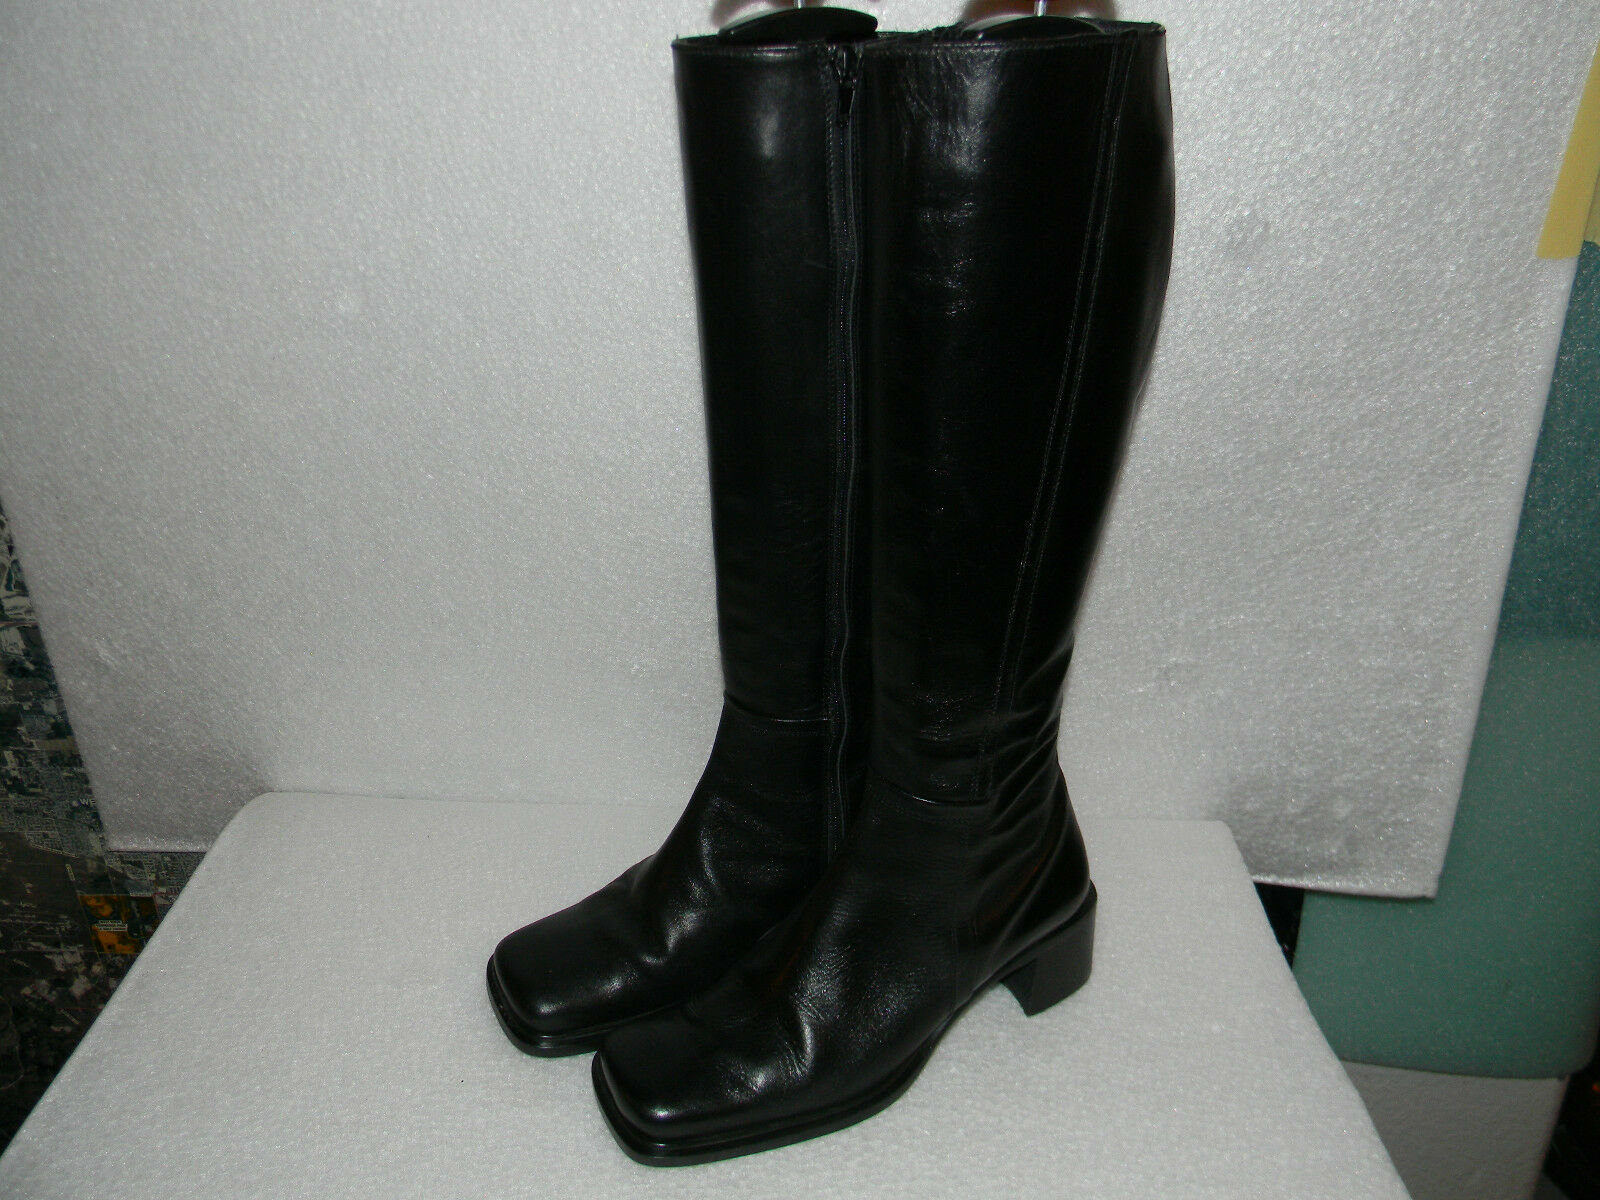 Eddie Bauer BOOTS 6.5 17 Tall LEATHER BOOTS MADE IN ITALY EDDIE BAUER Boots 6.5